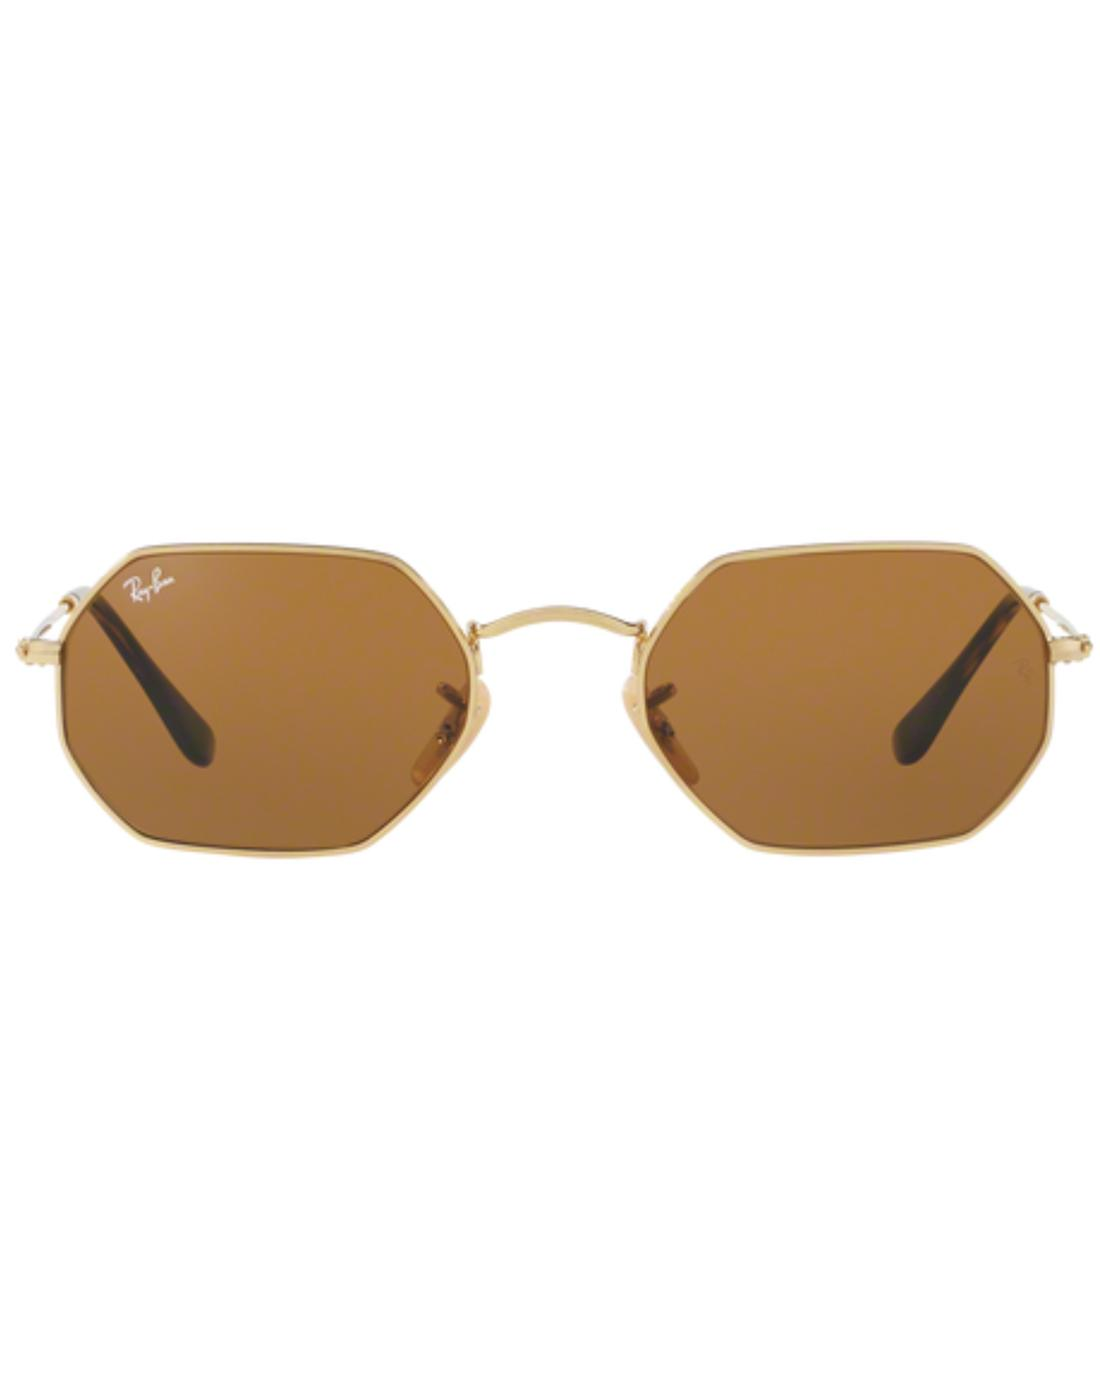 RAY-BAN Retro 60s Octagon Shaped Sunglasses -Brown